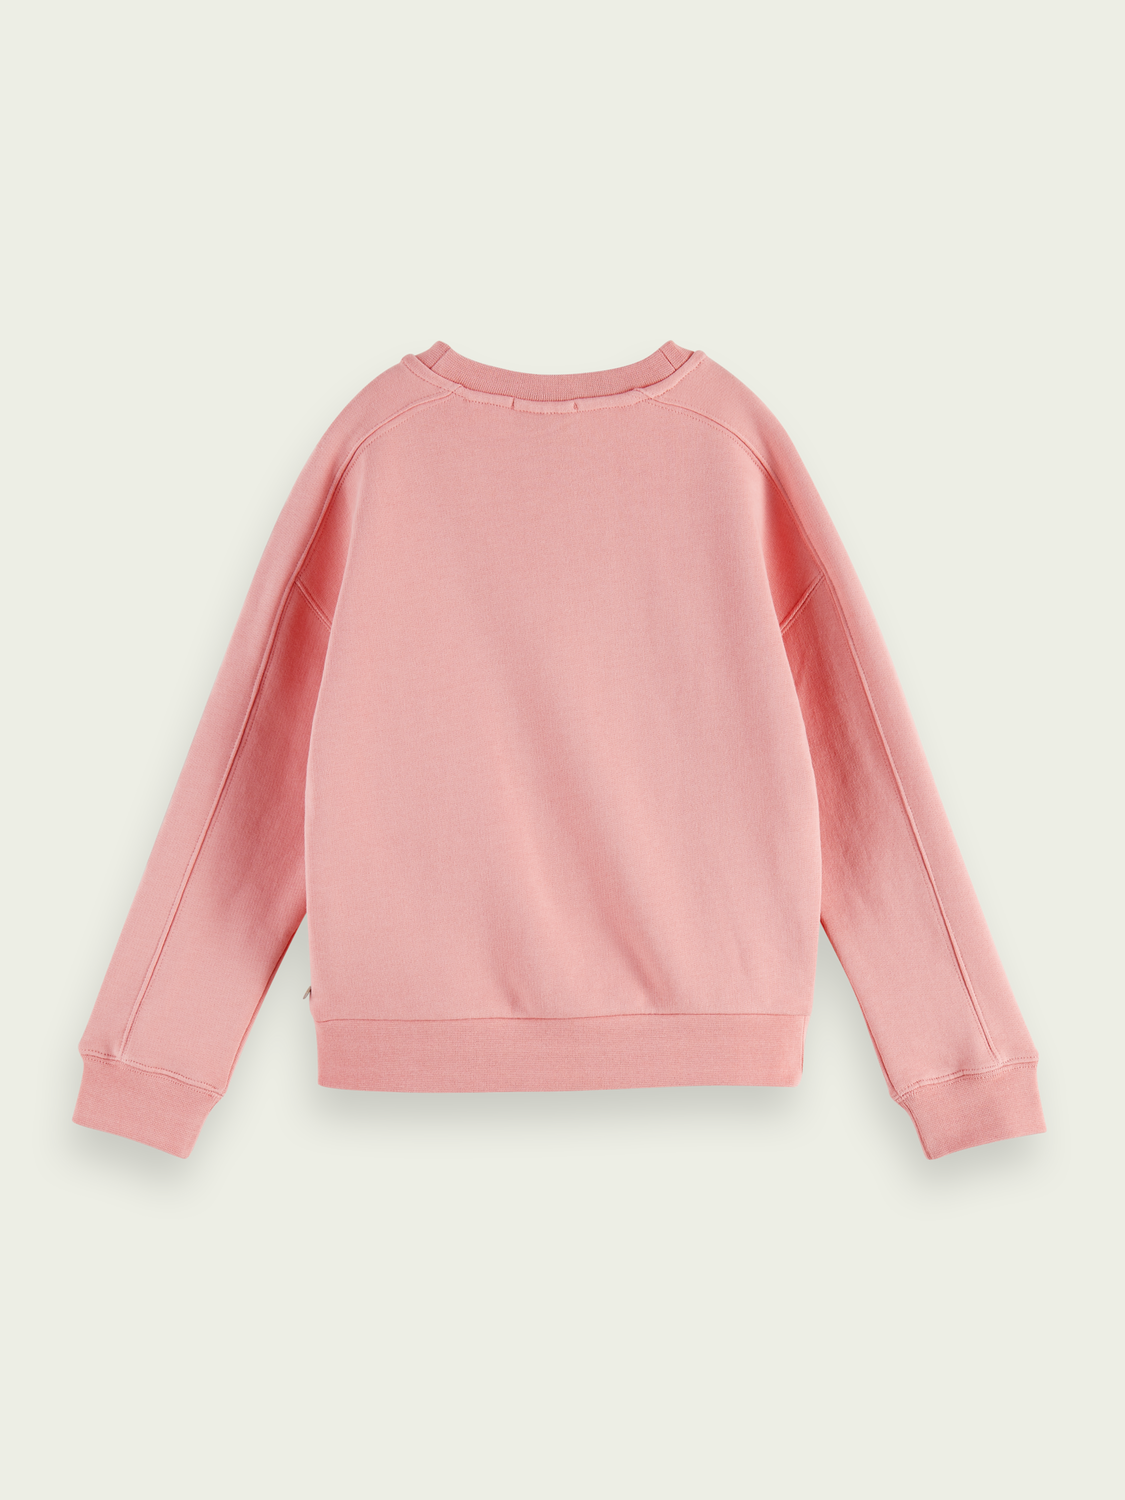 Kids Relaxed-fit graphic cotton sweatshirt